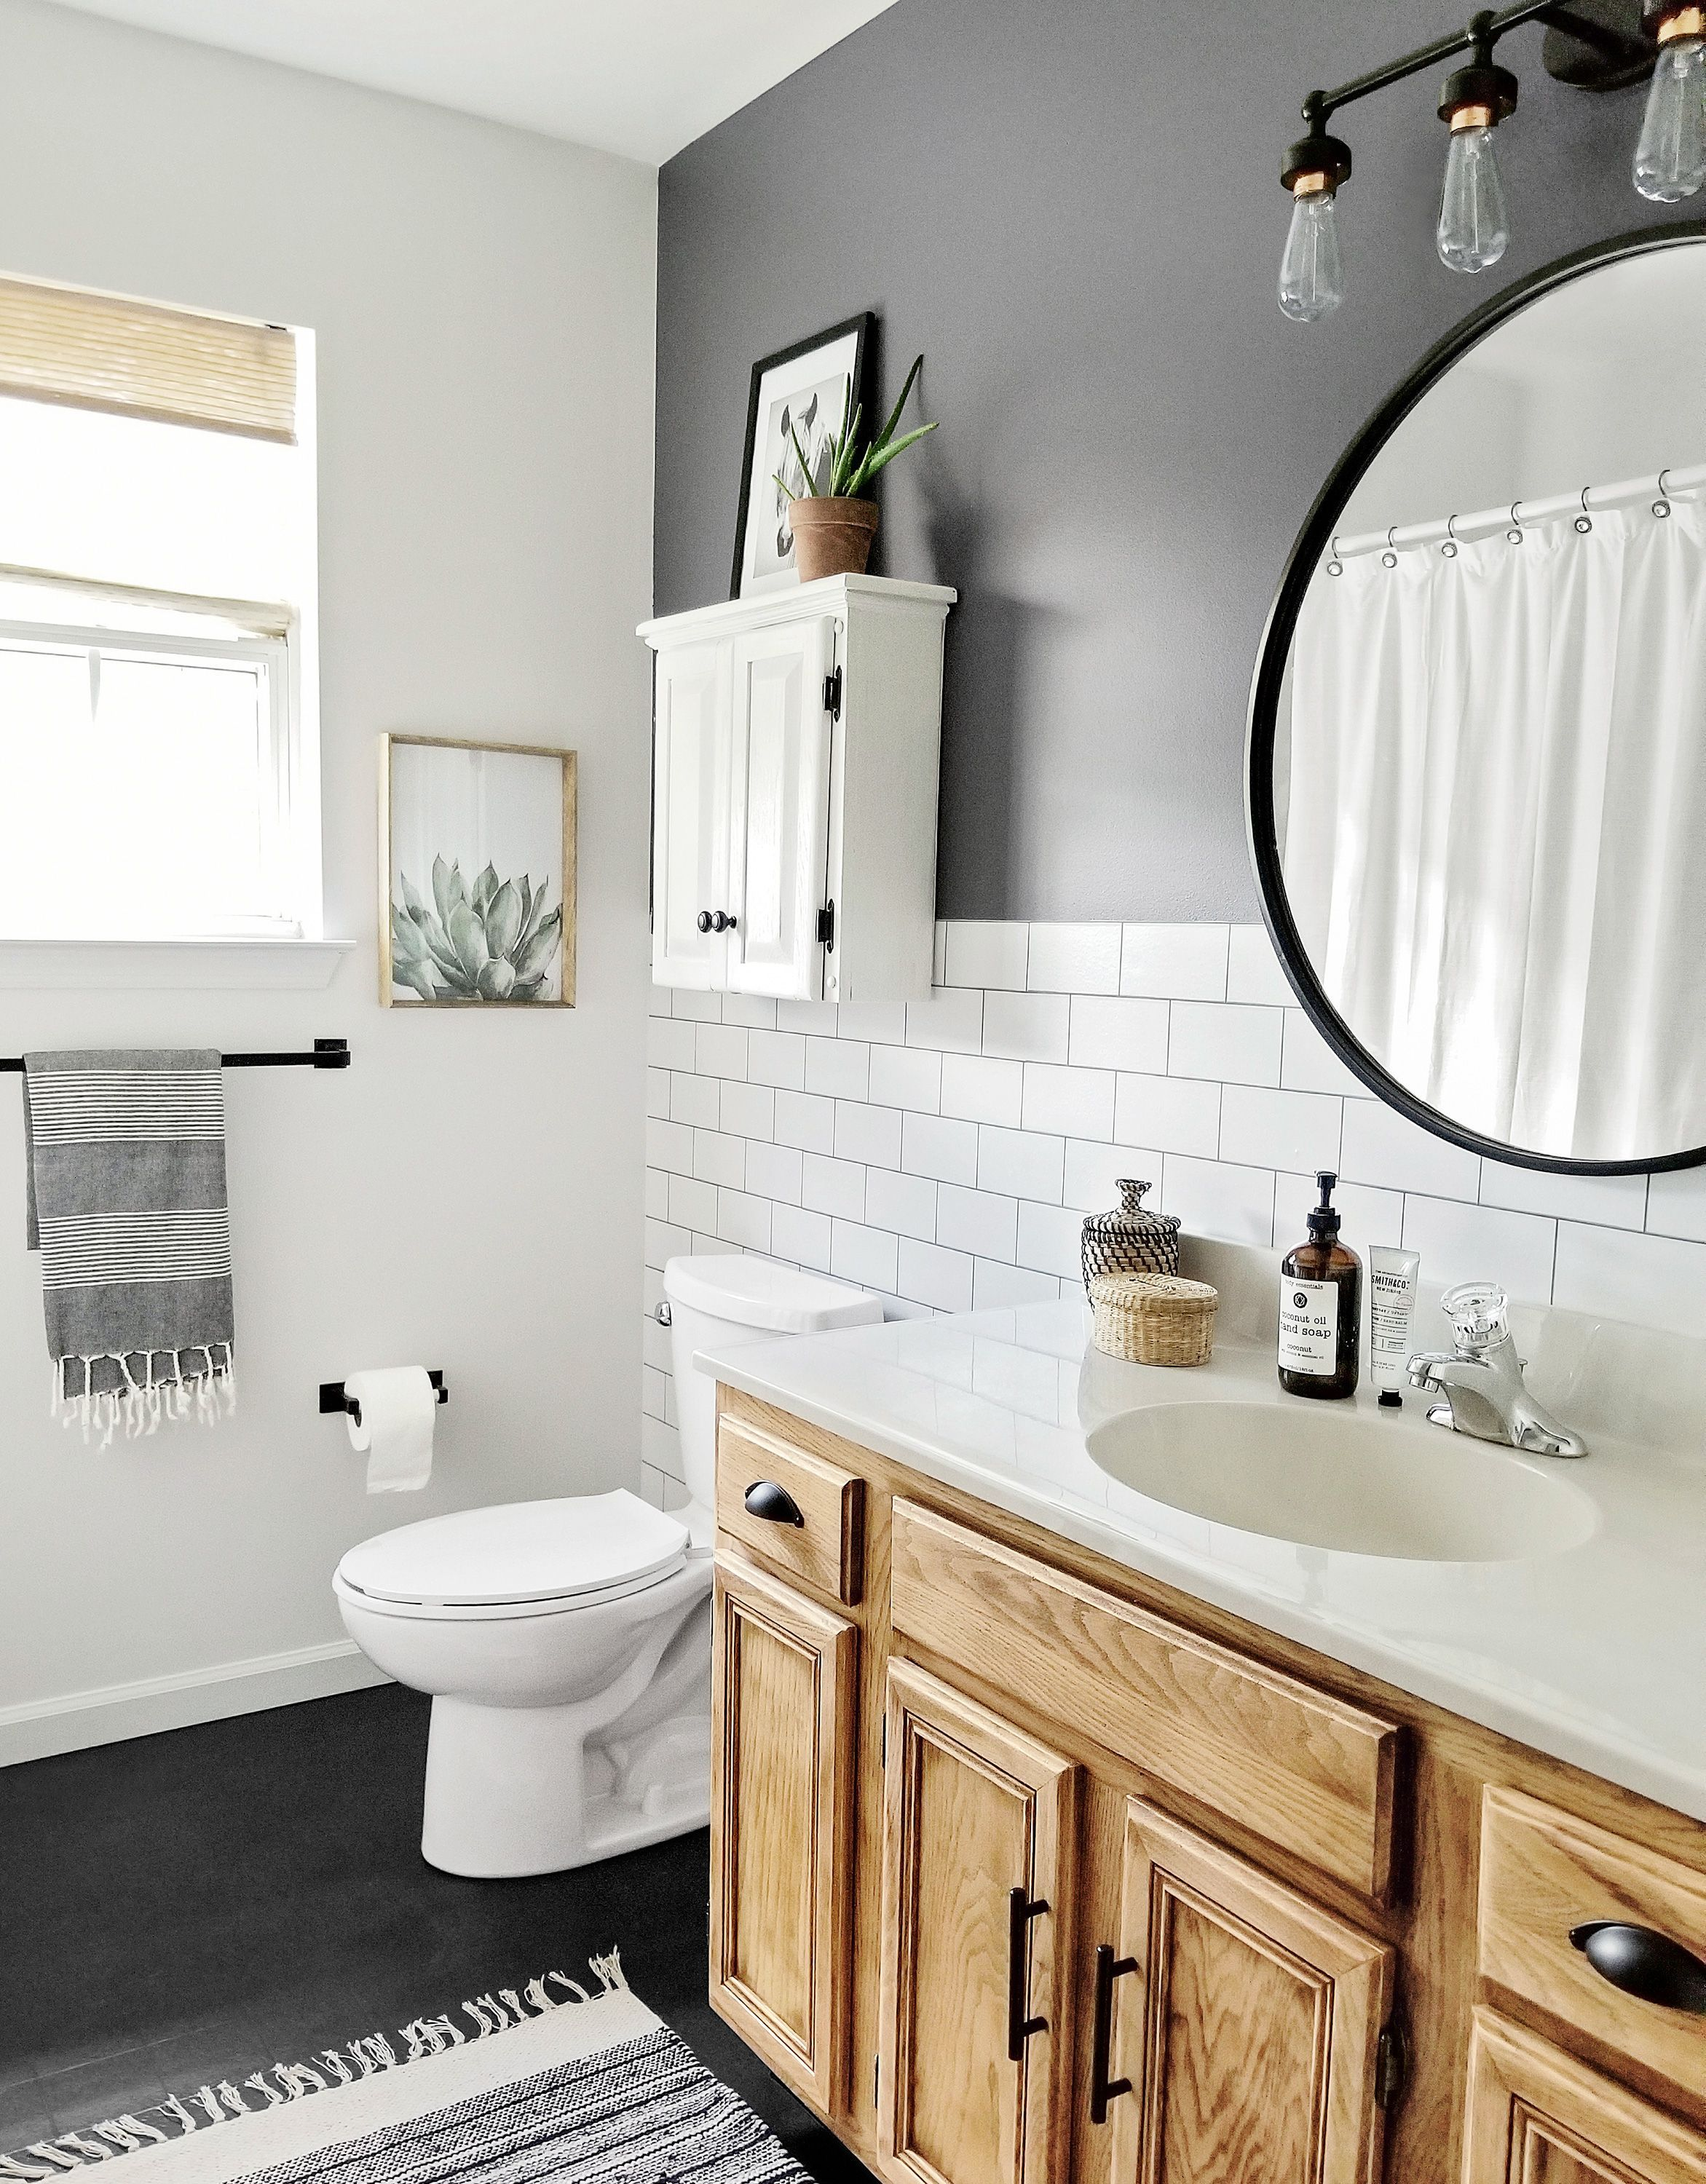 Kitchen and bathroom remodel, upgrade, & design Ideas and expert